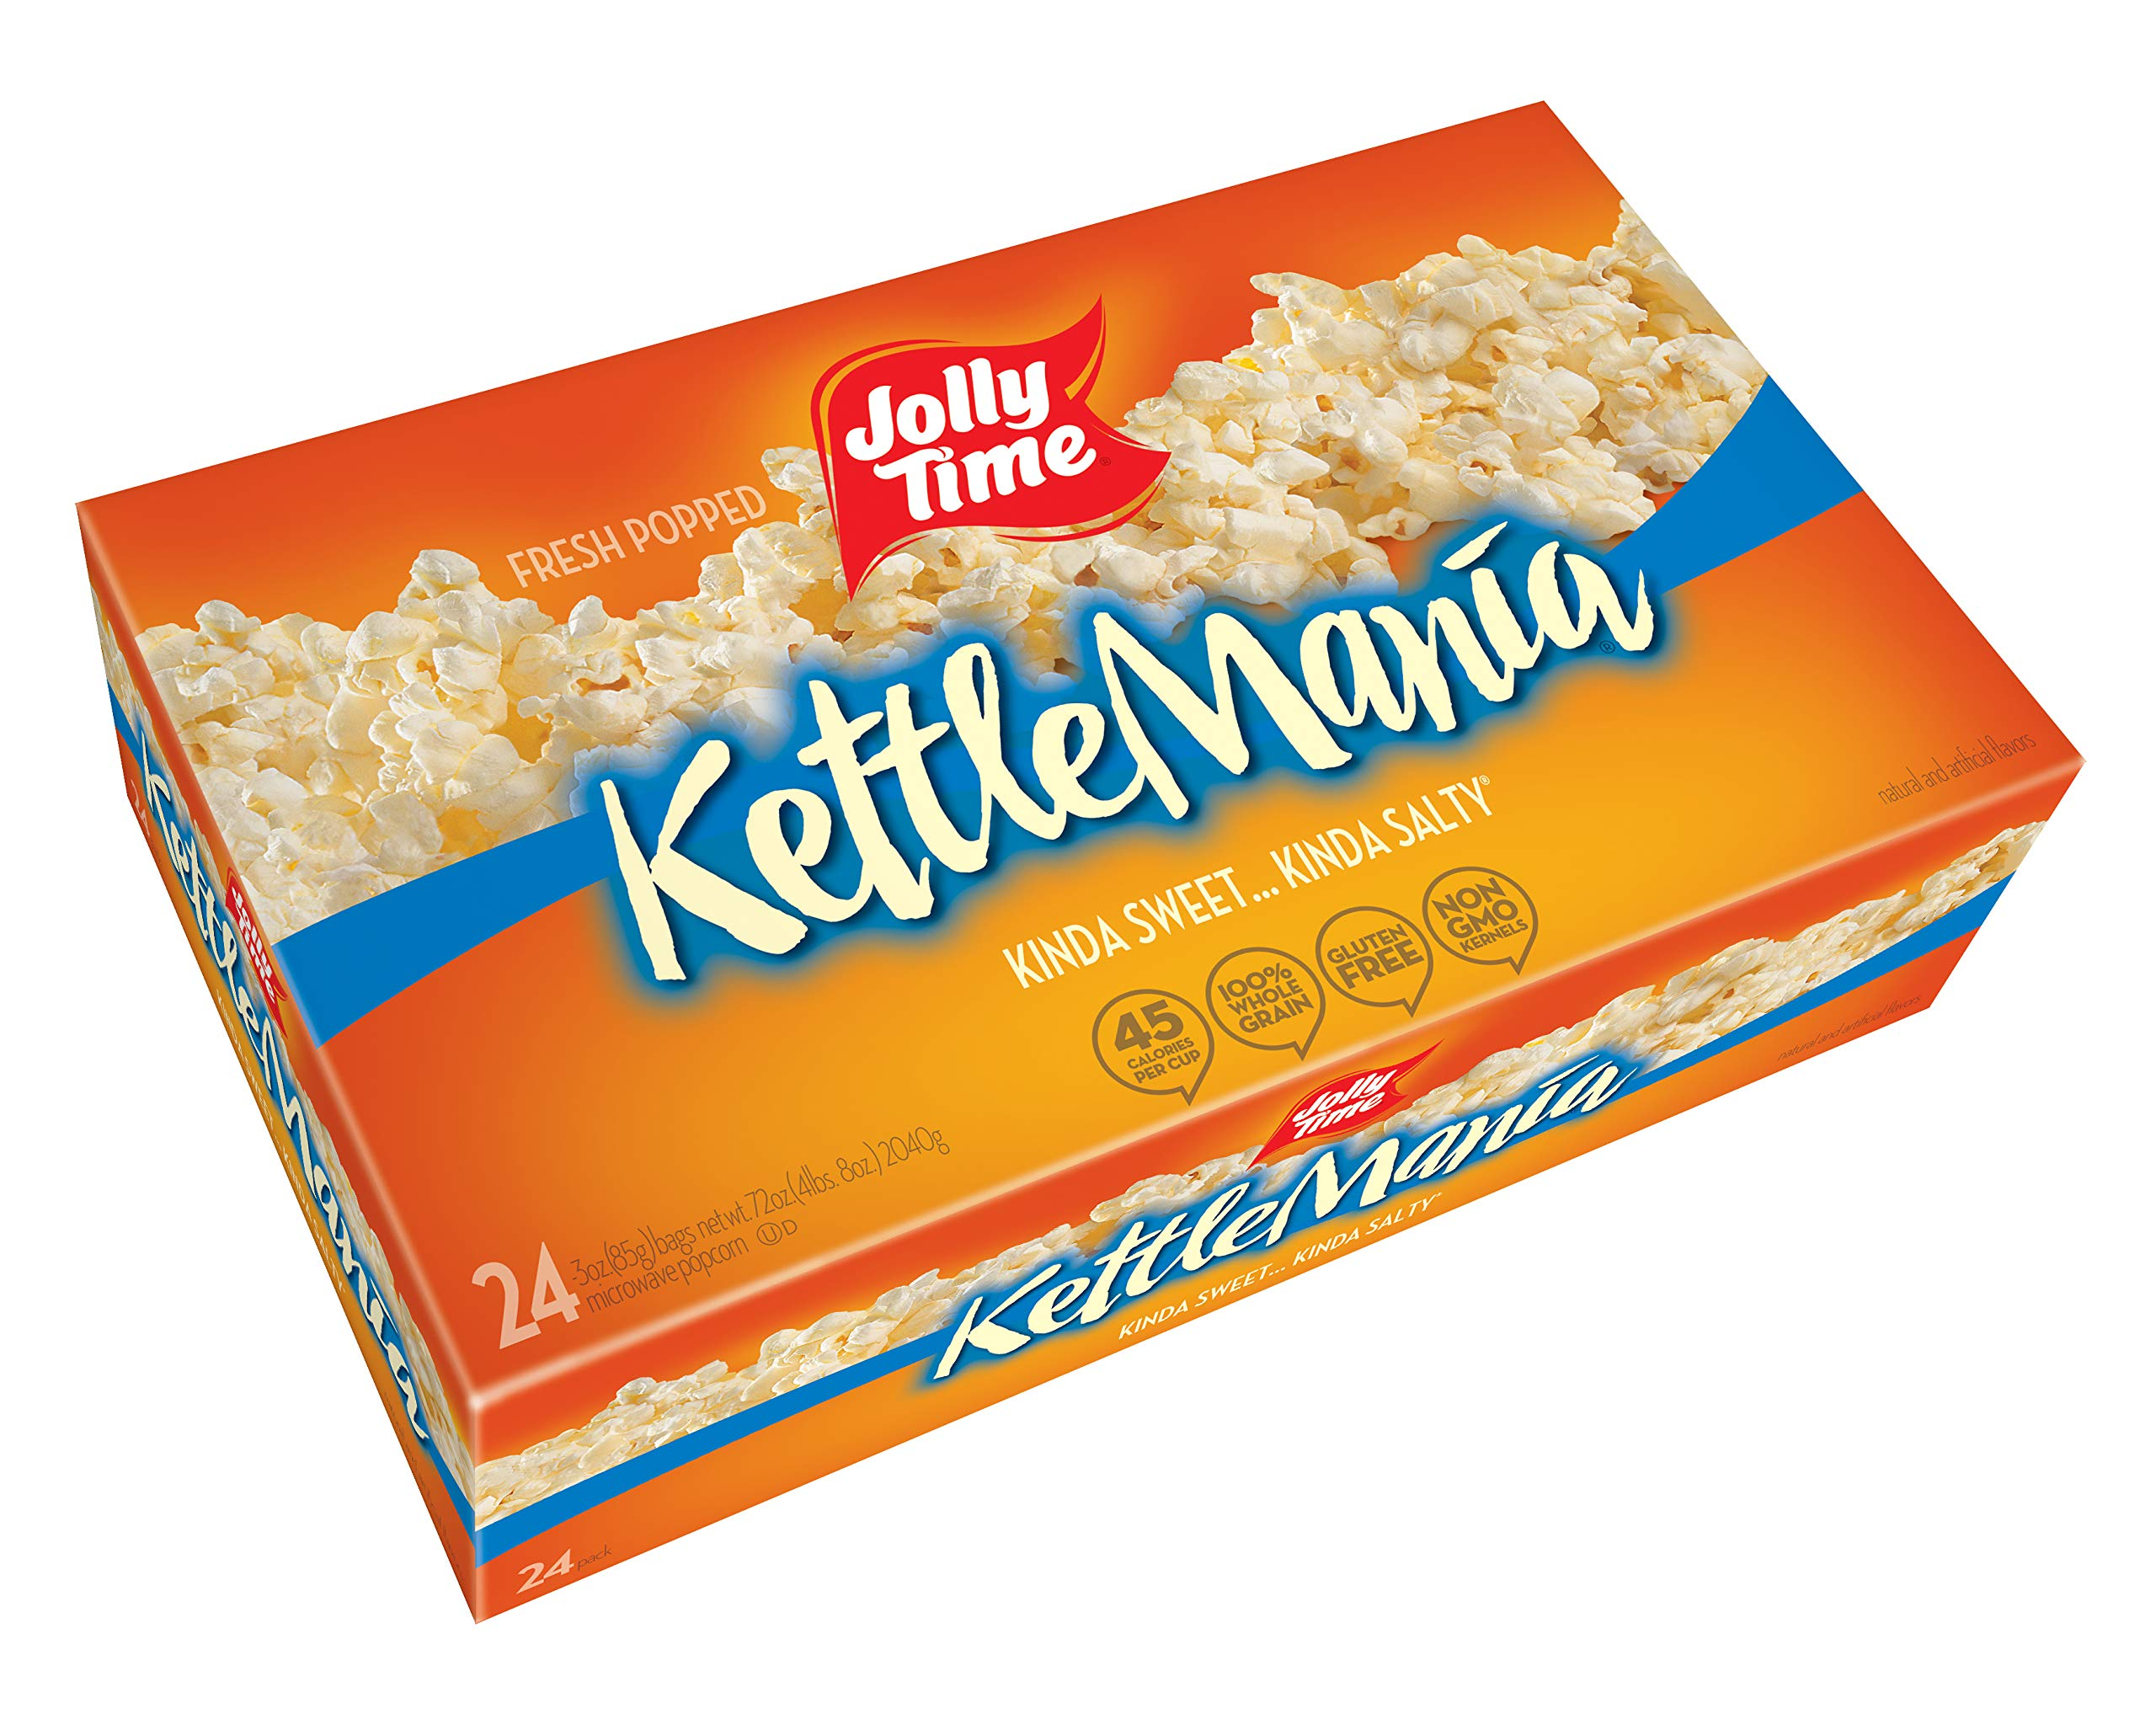 Jolly Time KettleMania Microwave Popcorn Sweet and Salty Gourmet Kettle Corn, 24 Count by Jolly Time